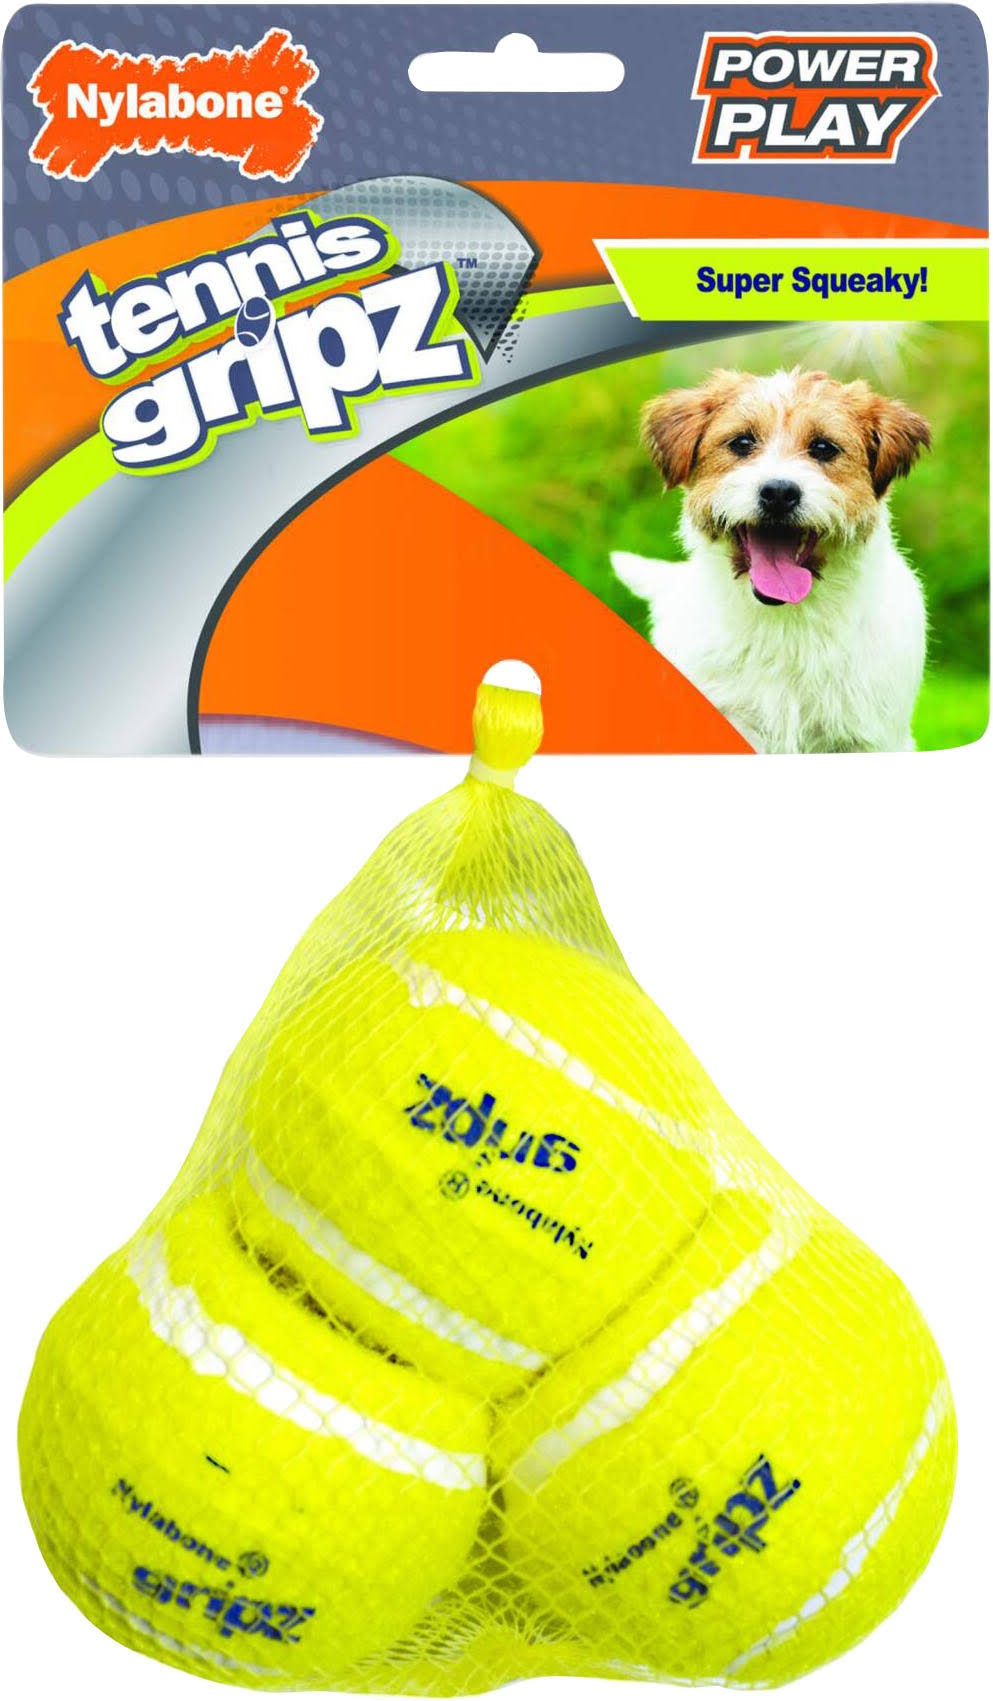 Nylabone NPLY003P Power Play Tennis Gripz Ball, Yellow, Small/3 Pk